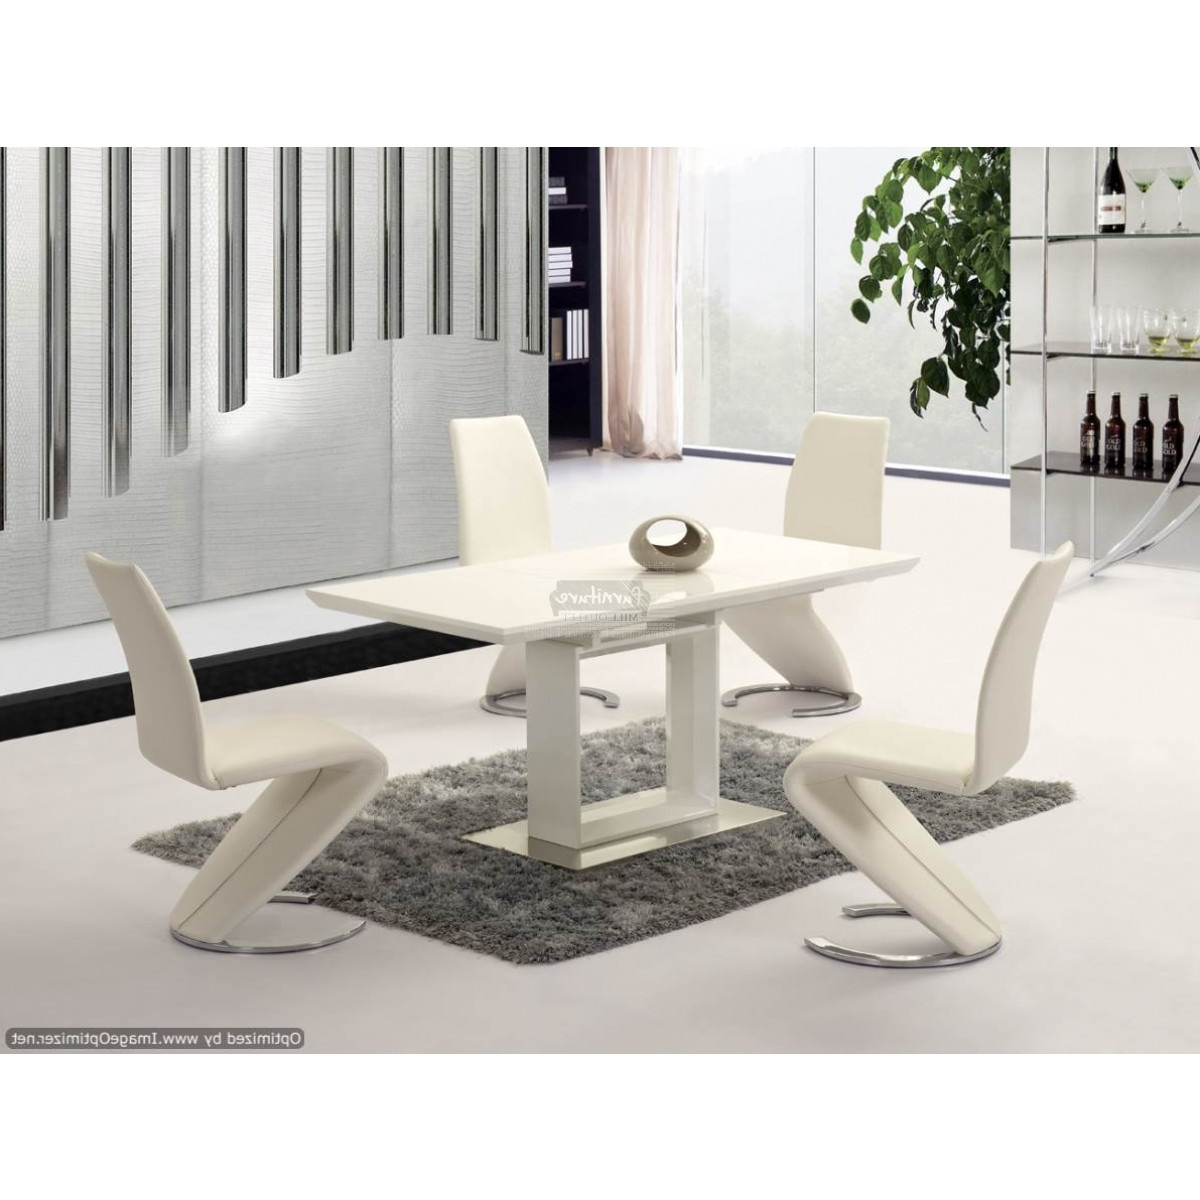 Space White High Gloss Extending Dining Table – 120Cm To 160Cm Intended For Current Extending Gloss Dining Tables (View 9 of 25)